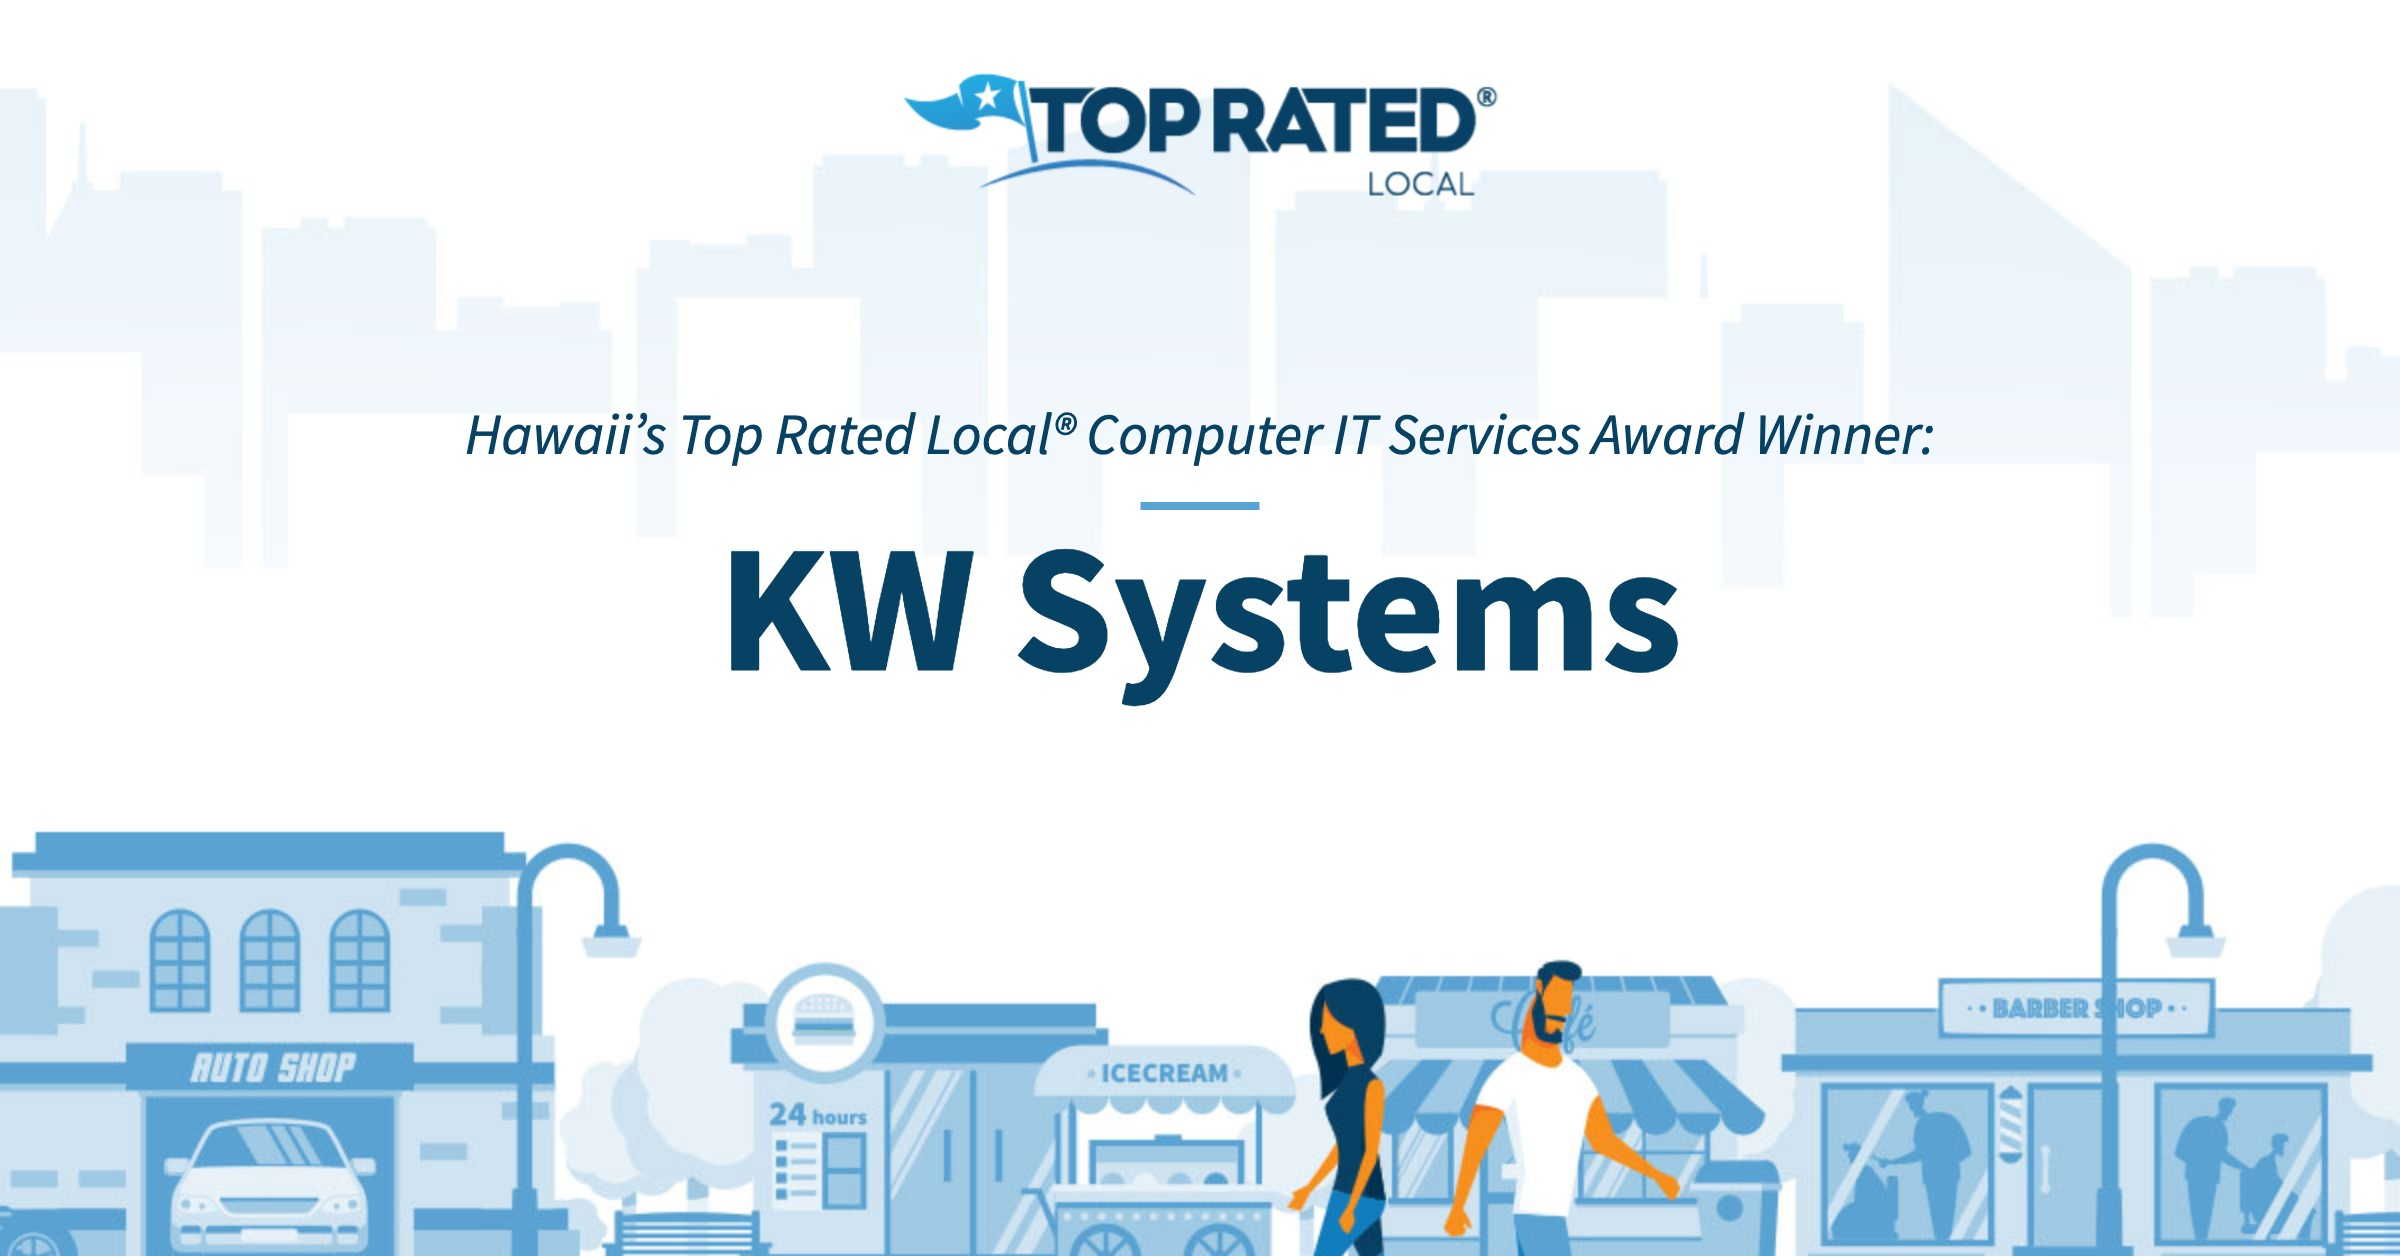 Hawaii's Top Rated Local® Computer IT Services Award Winner: KW Systems